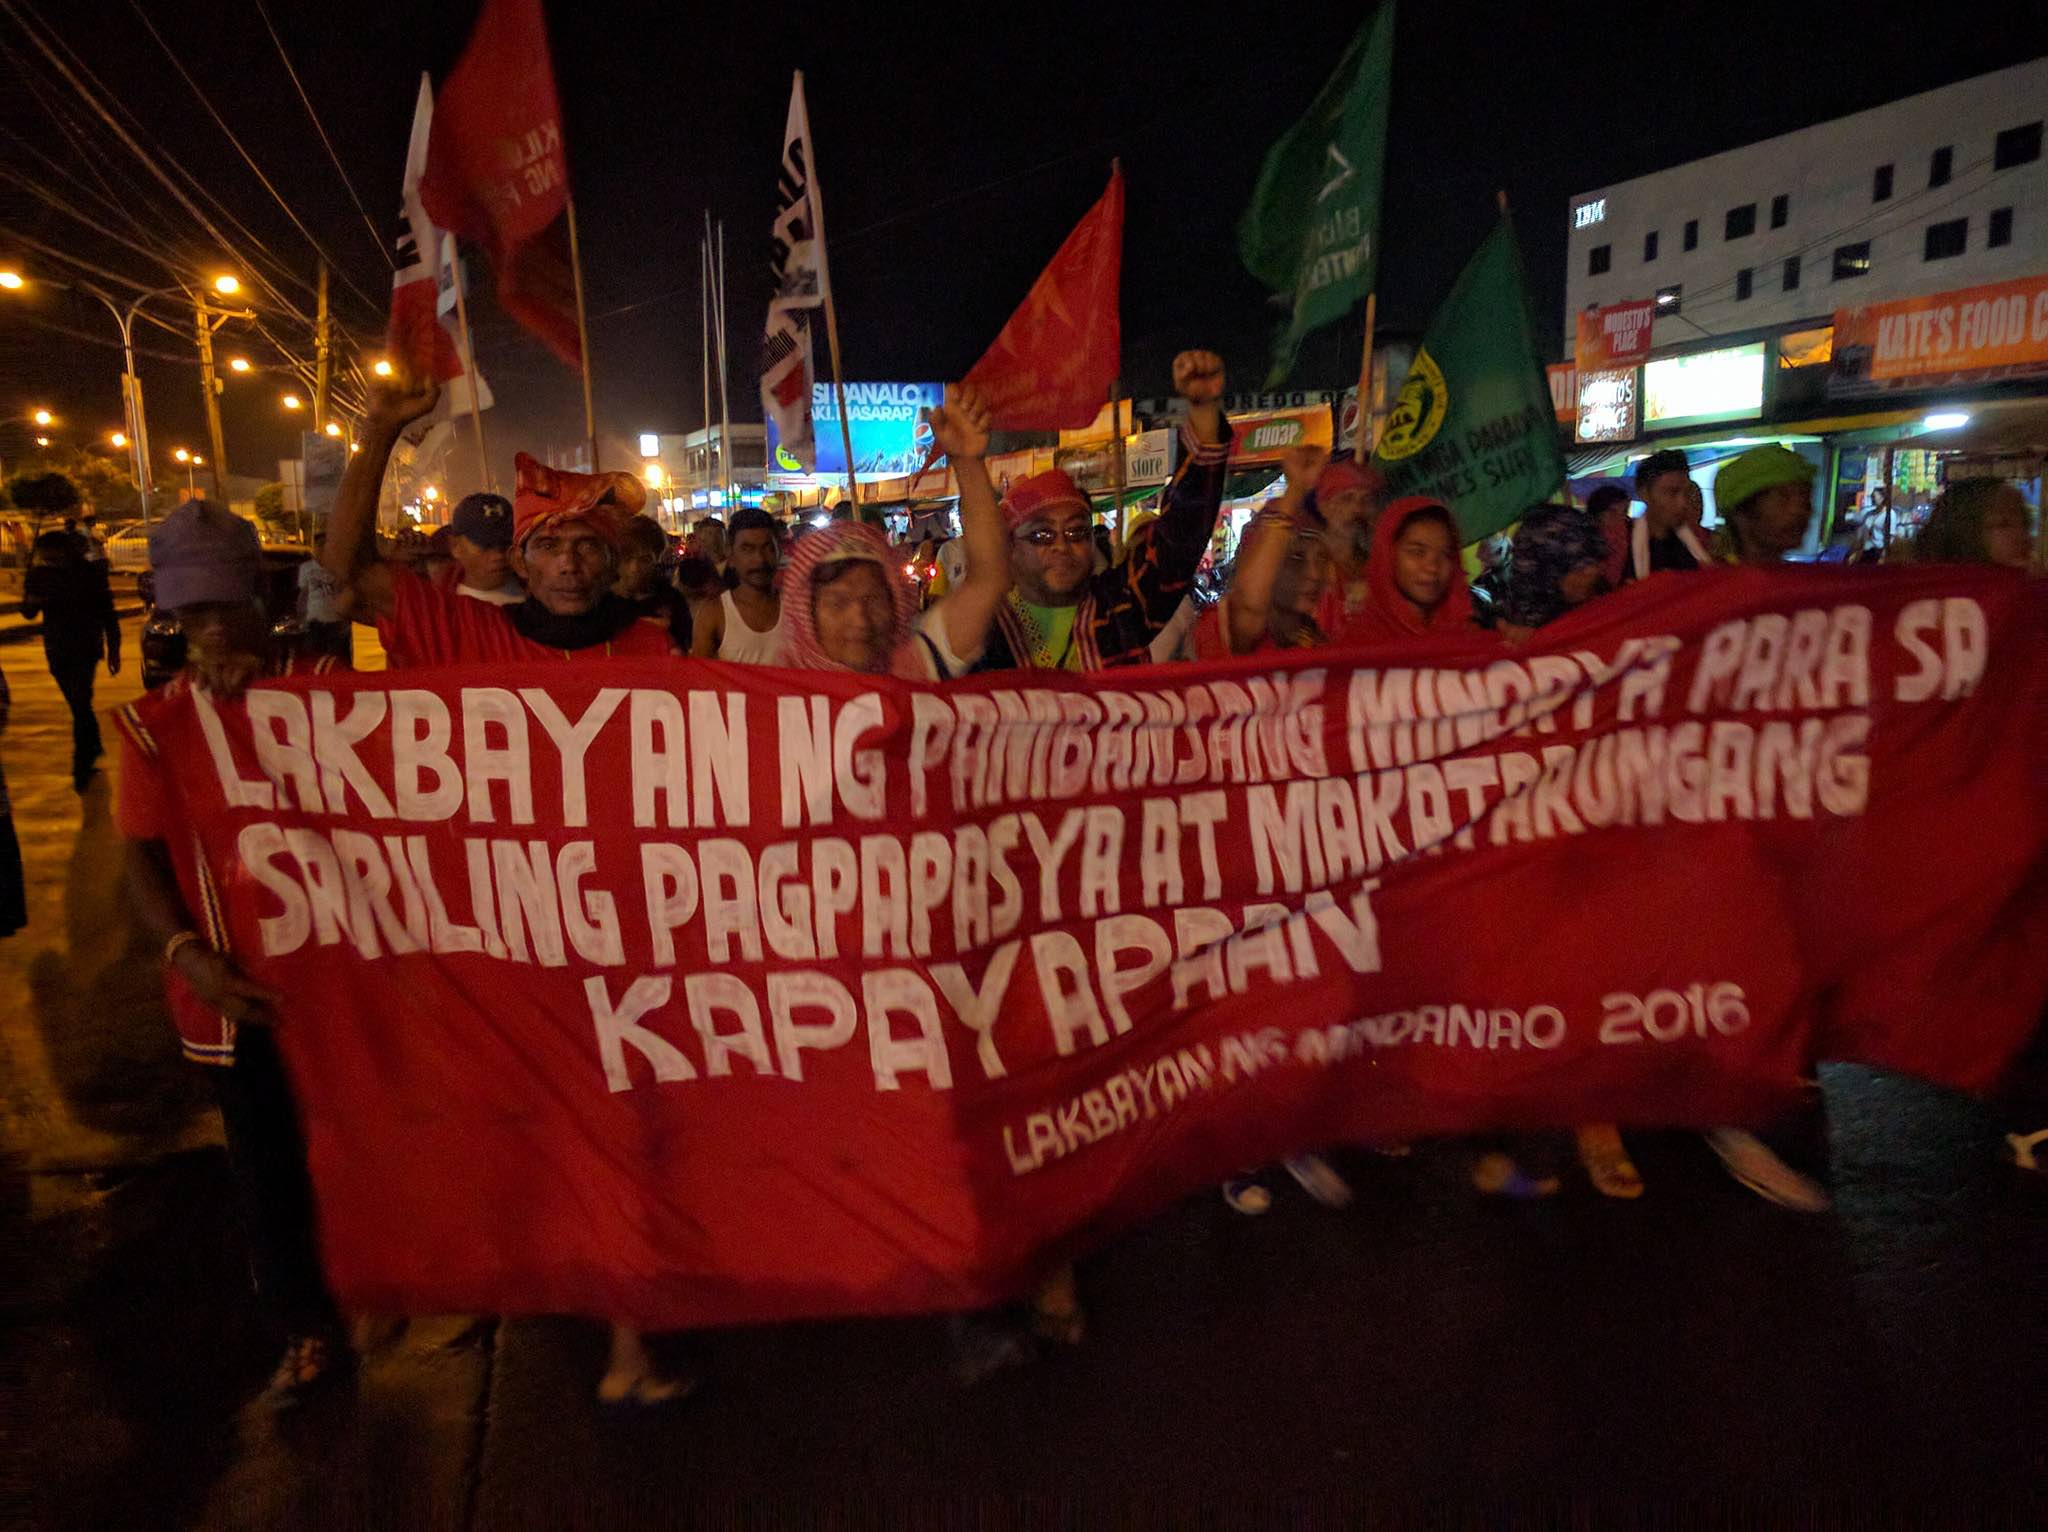 RIGHT TO SELF-DETERMINATION. On the 100th day of the Duterte administration, Moro and indigenous peoples from communities all over the country march to Manila to assert their right to self-determination. Photo from Lakbayan ng Pambansang Minorya's Facebook page